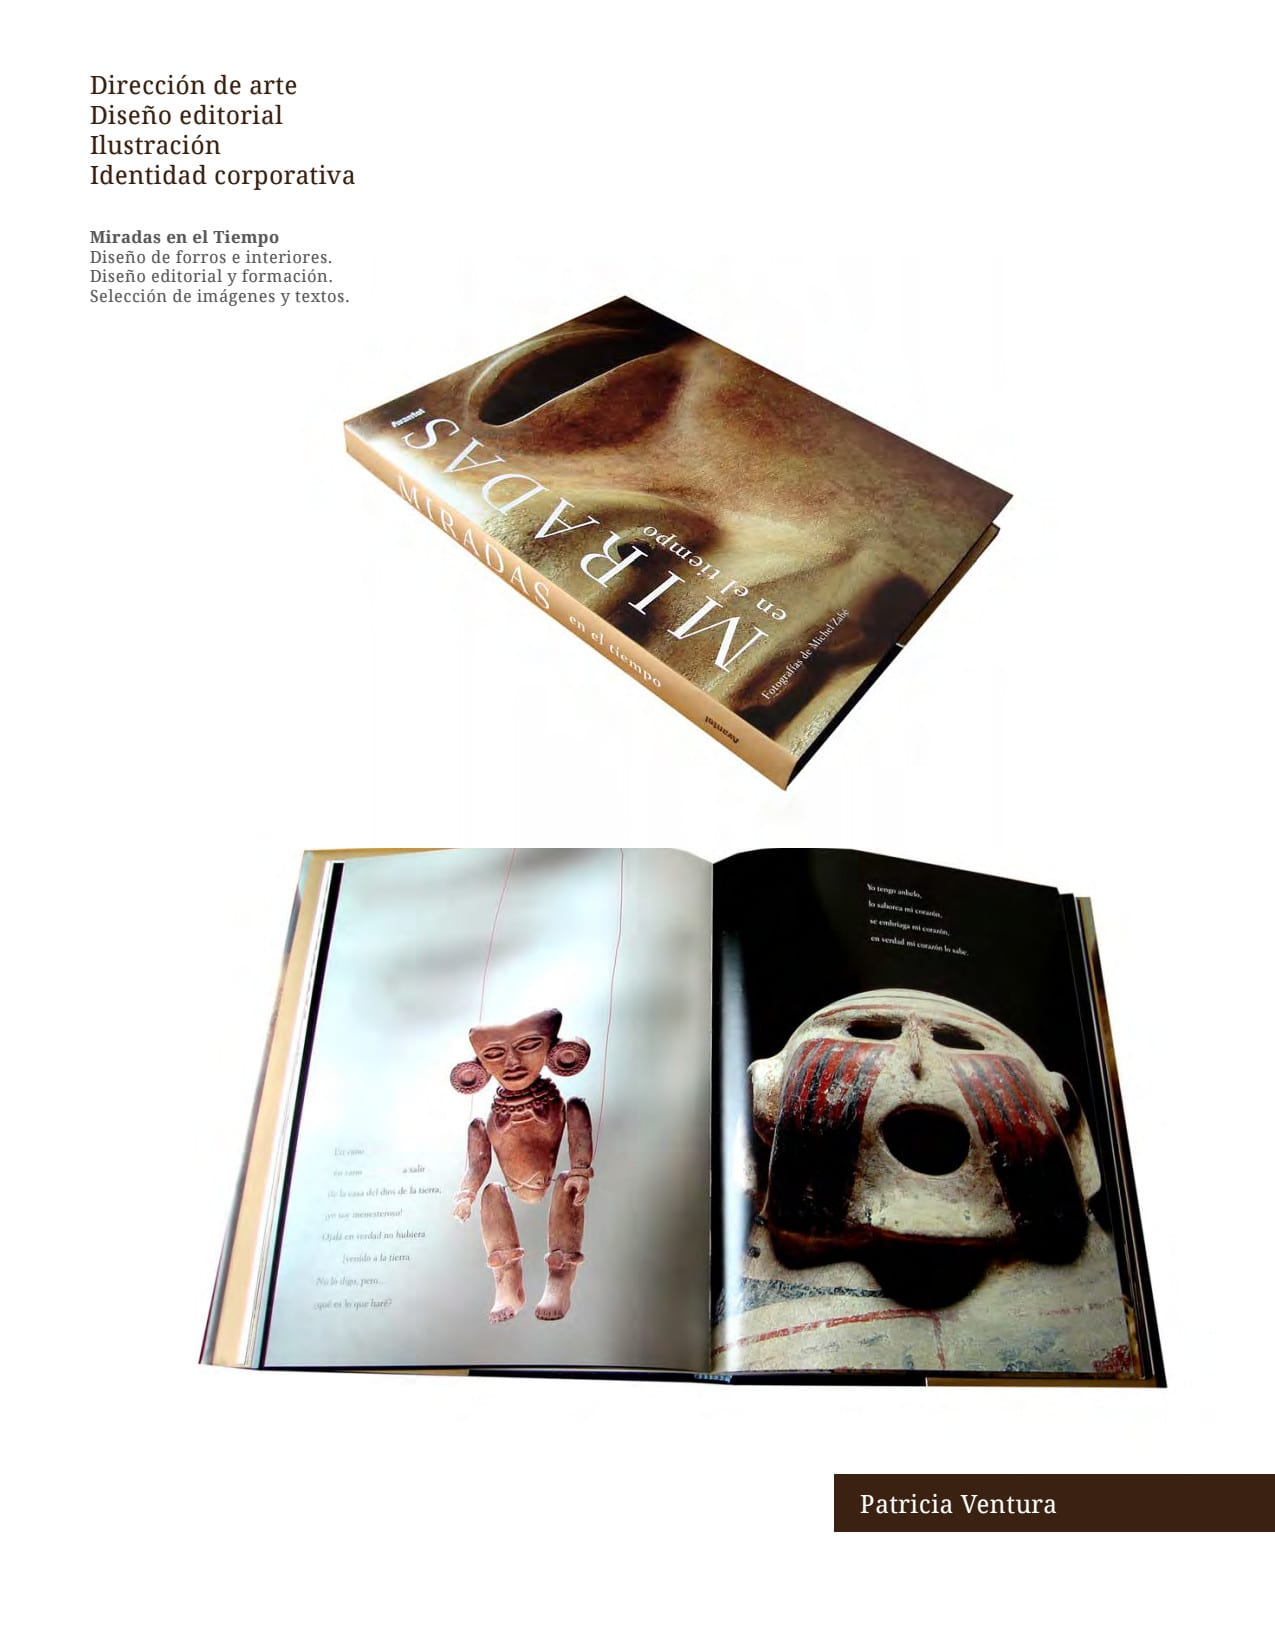 Book Design and Art Direction